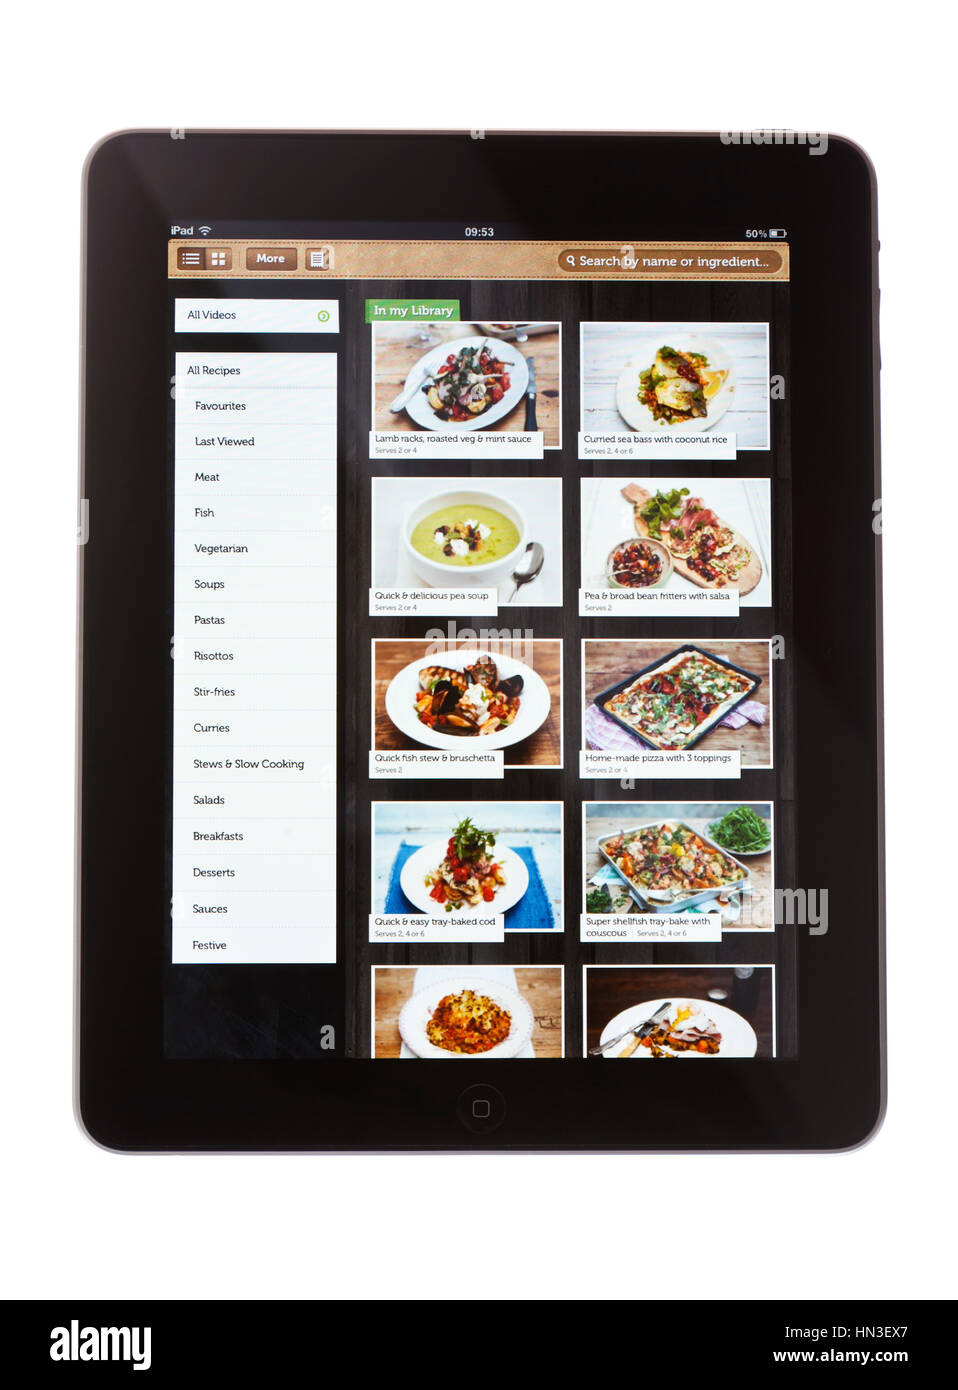 BATH, UK - NOVEMBER 9, 2011: An Apple iPad, against a white background, displaying the Jamie Oliver recipe app. - Stock Image